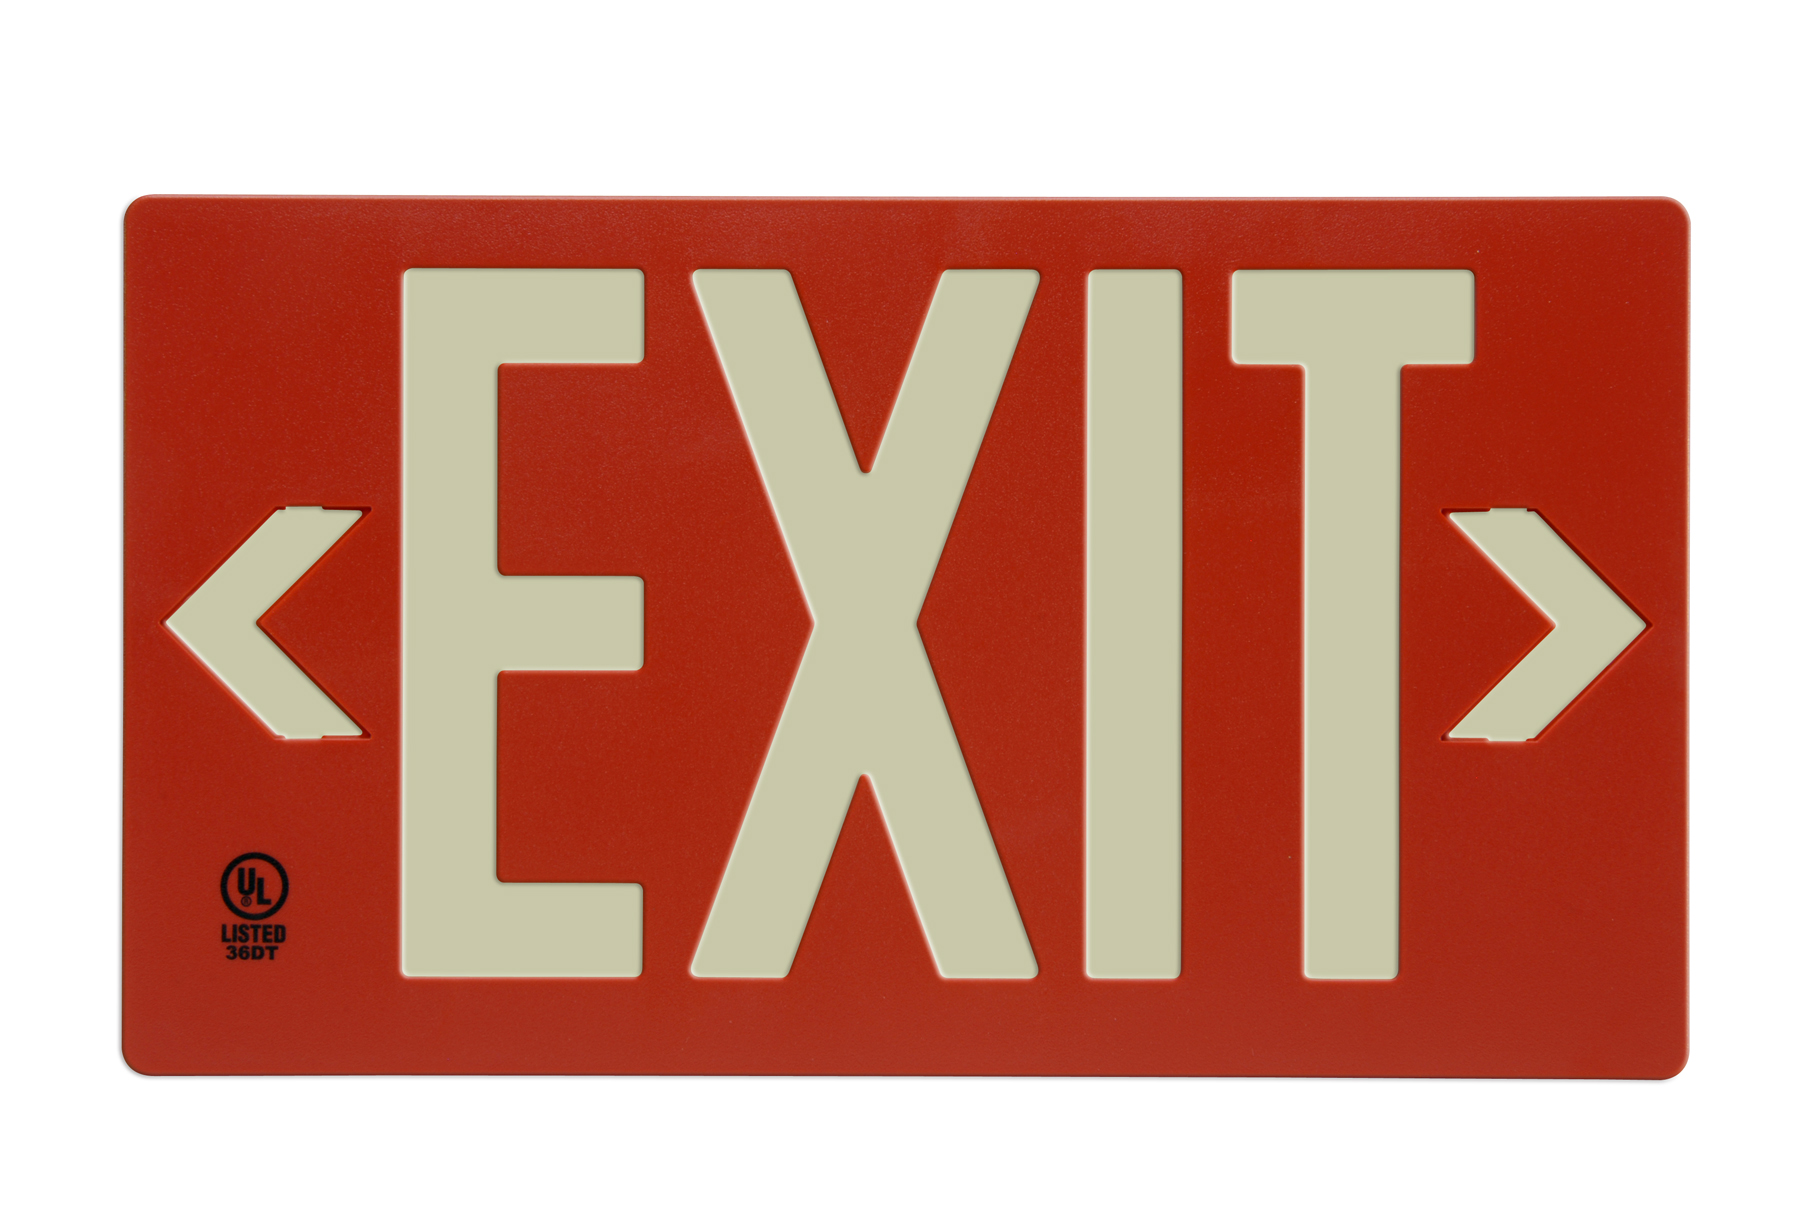 No-exit-sign-clip-art.jpg. Ecoexitd2c044-no-exit-sign-clip-art.jpg. ecoexitd2c0442.jpg-17